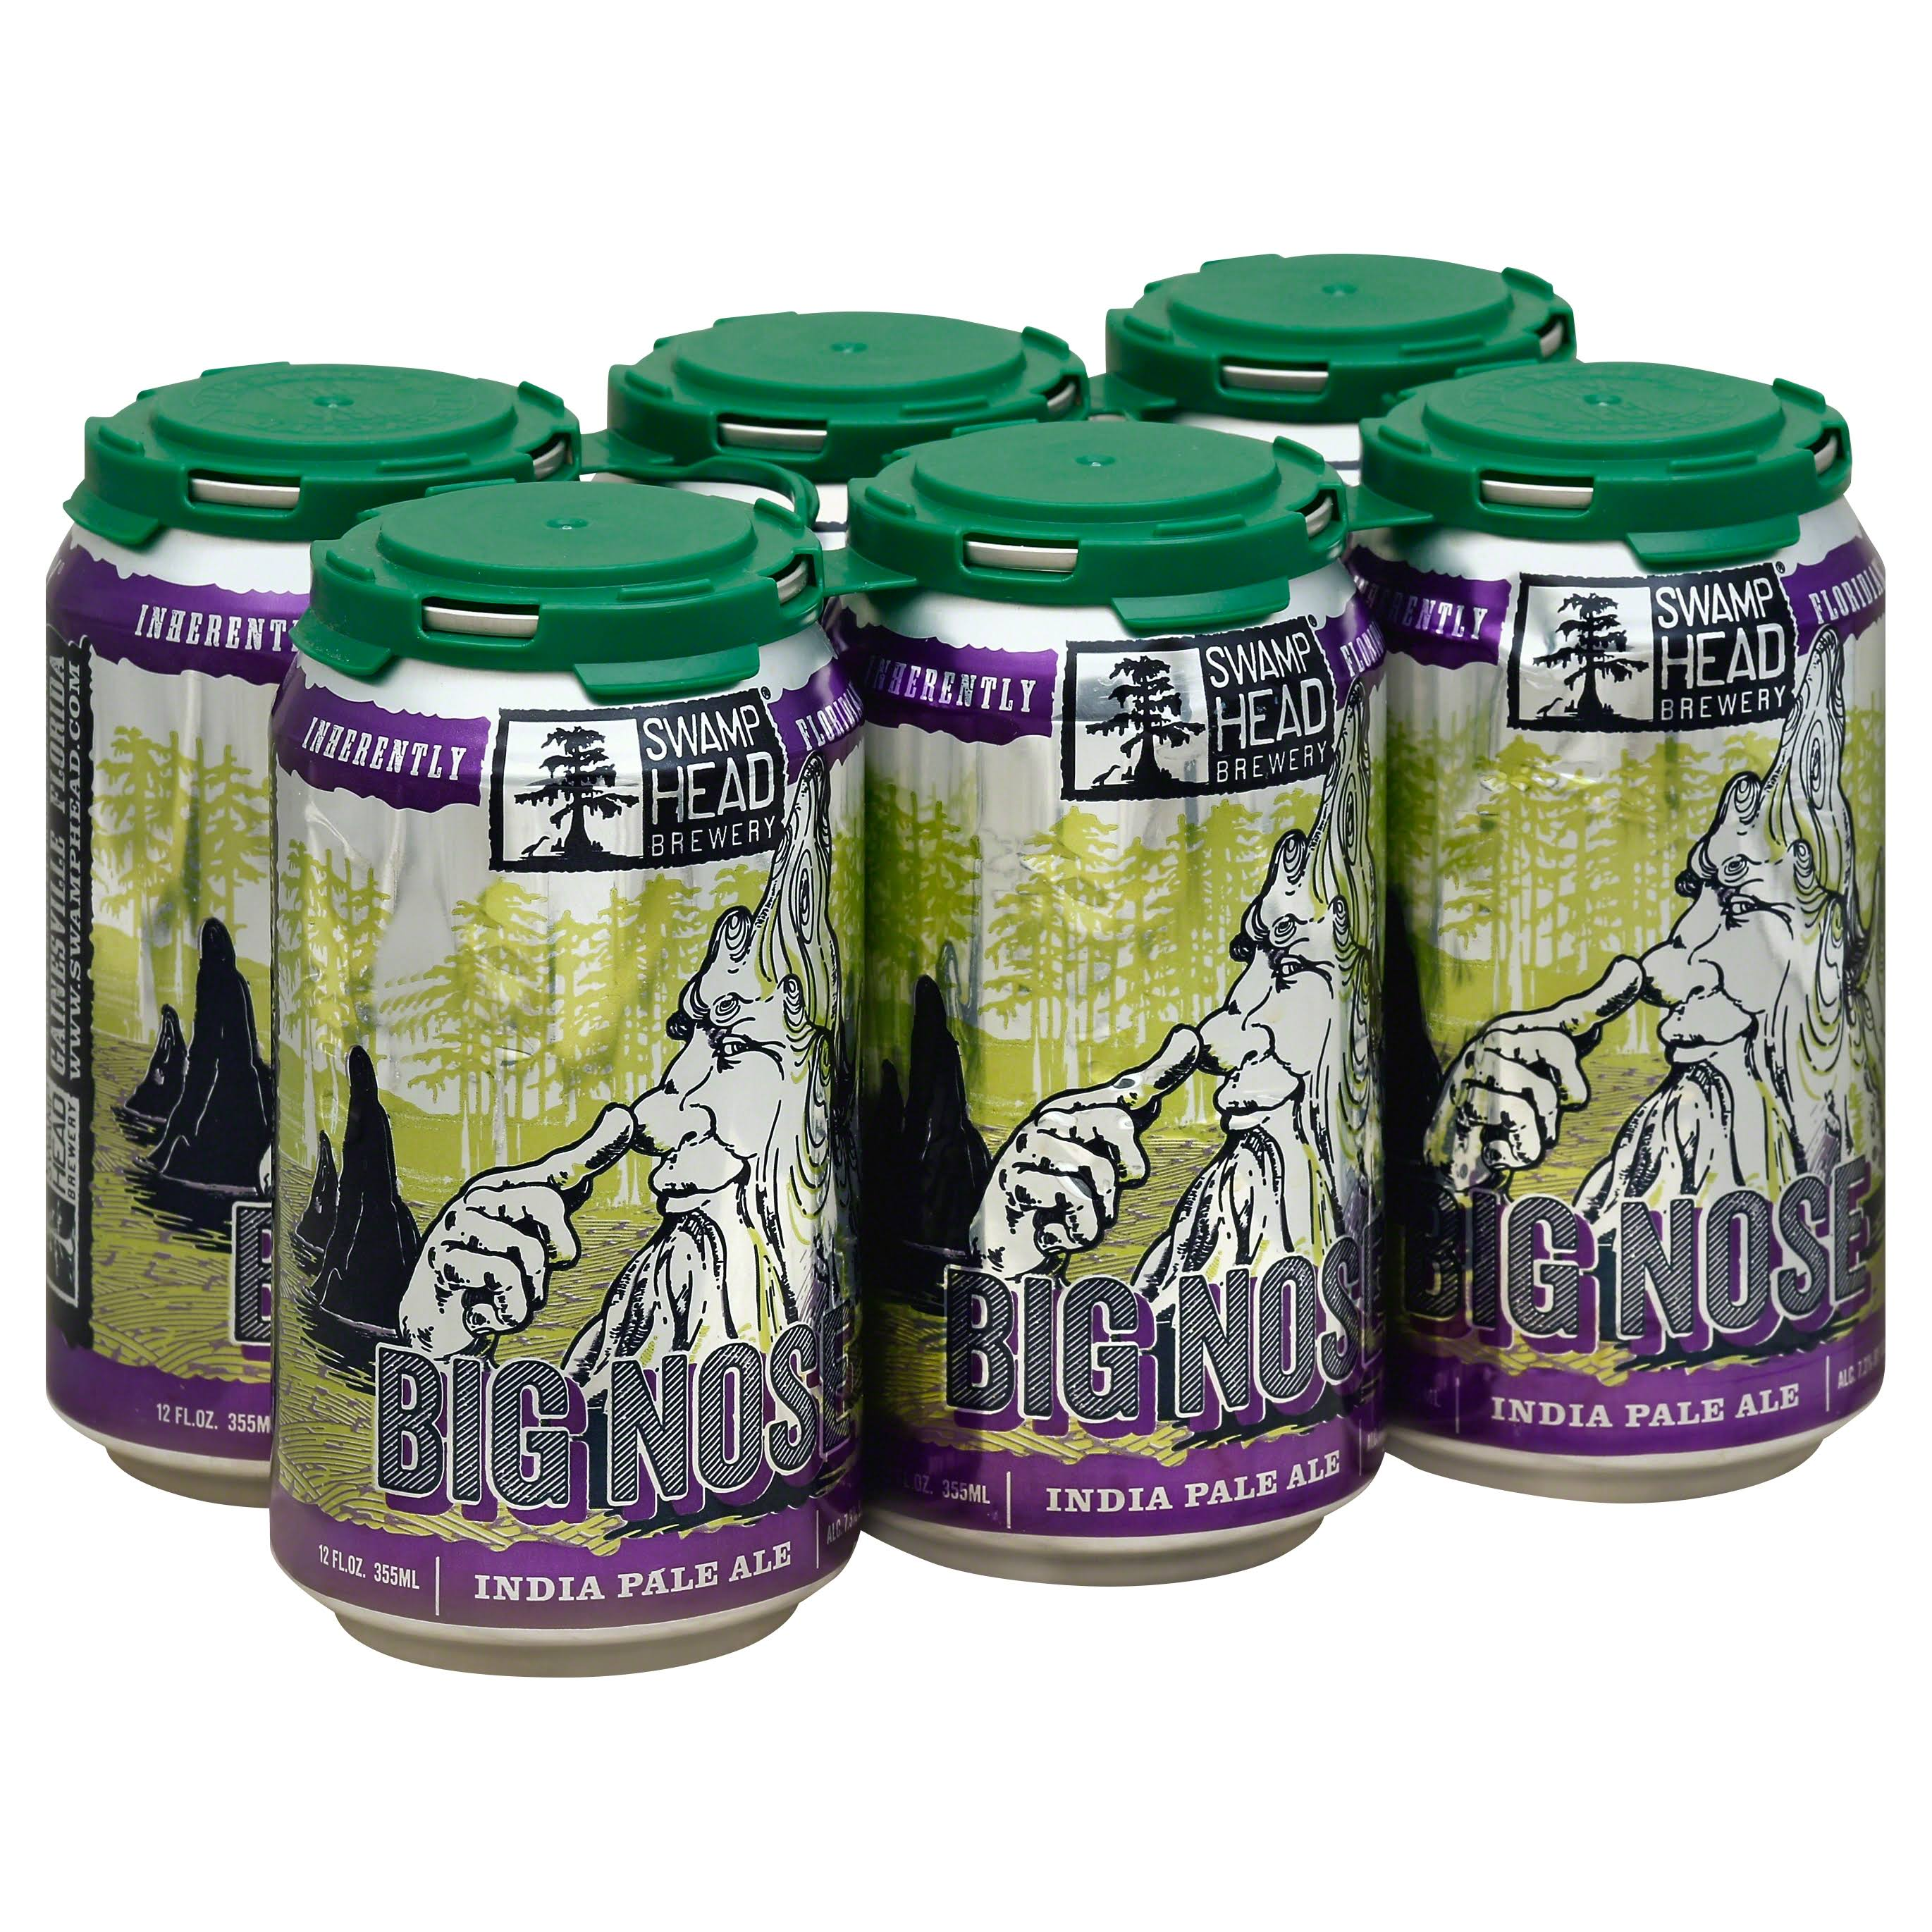 Swamp Head Brewery Beer, India Pale Ale, Big Nose - 6 pack, 12 fl oz cans